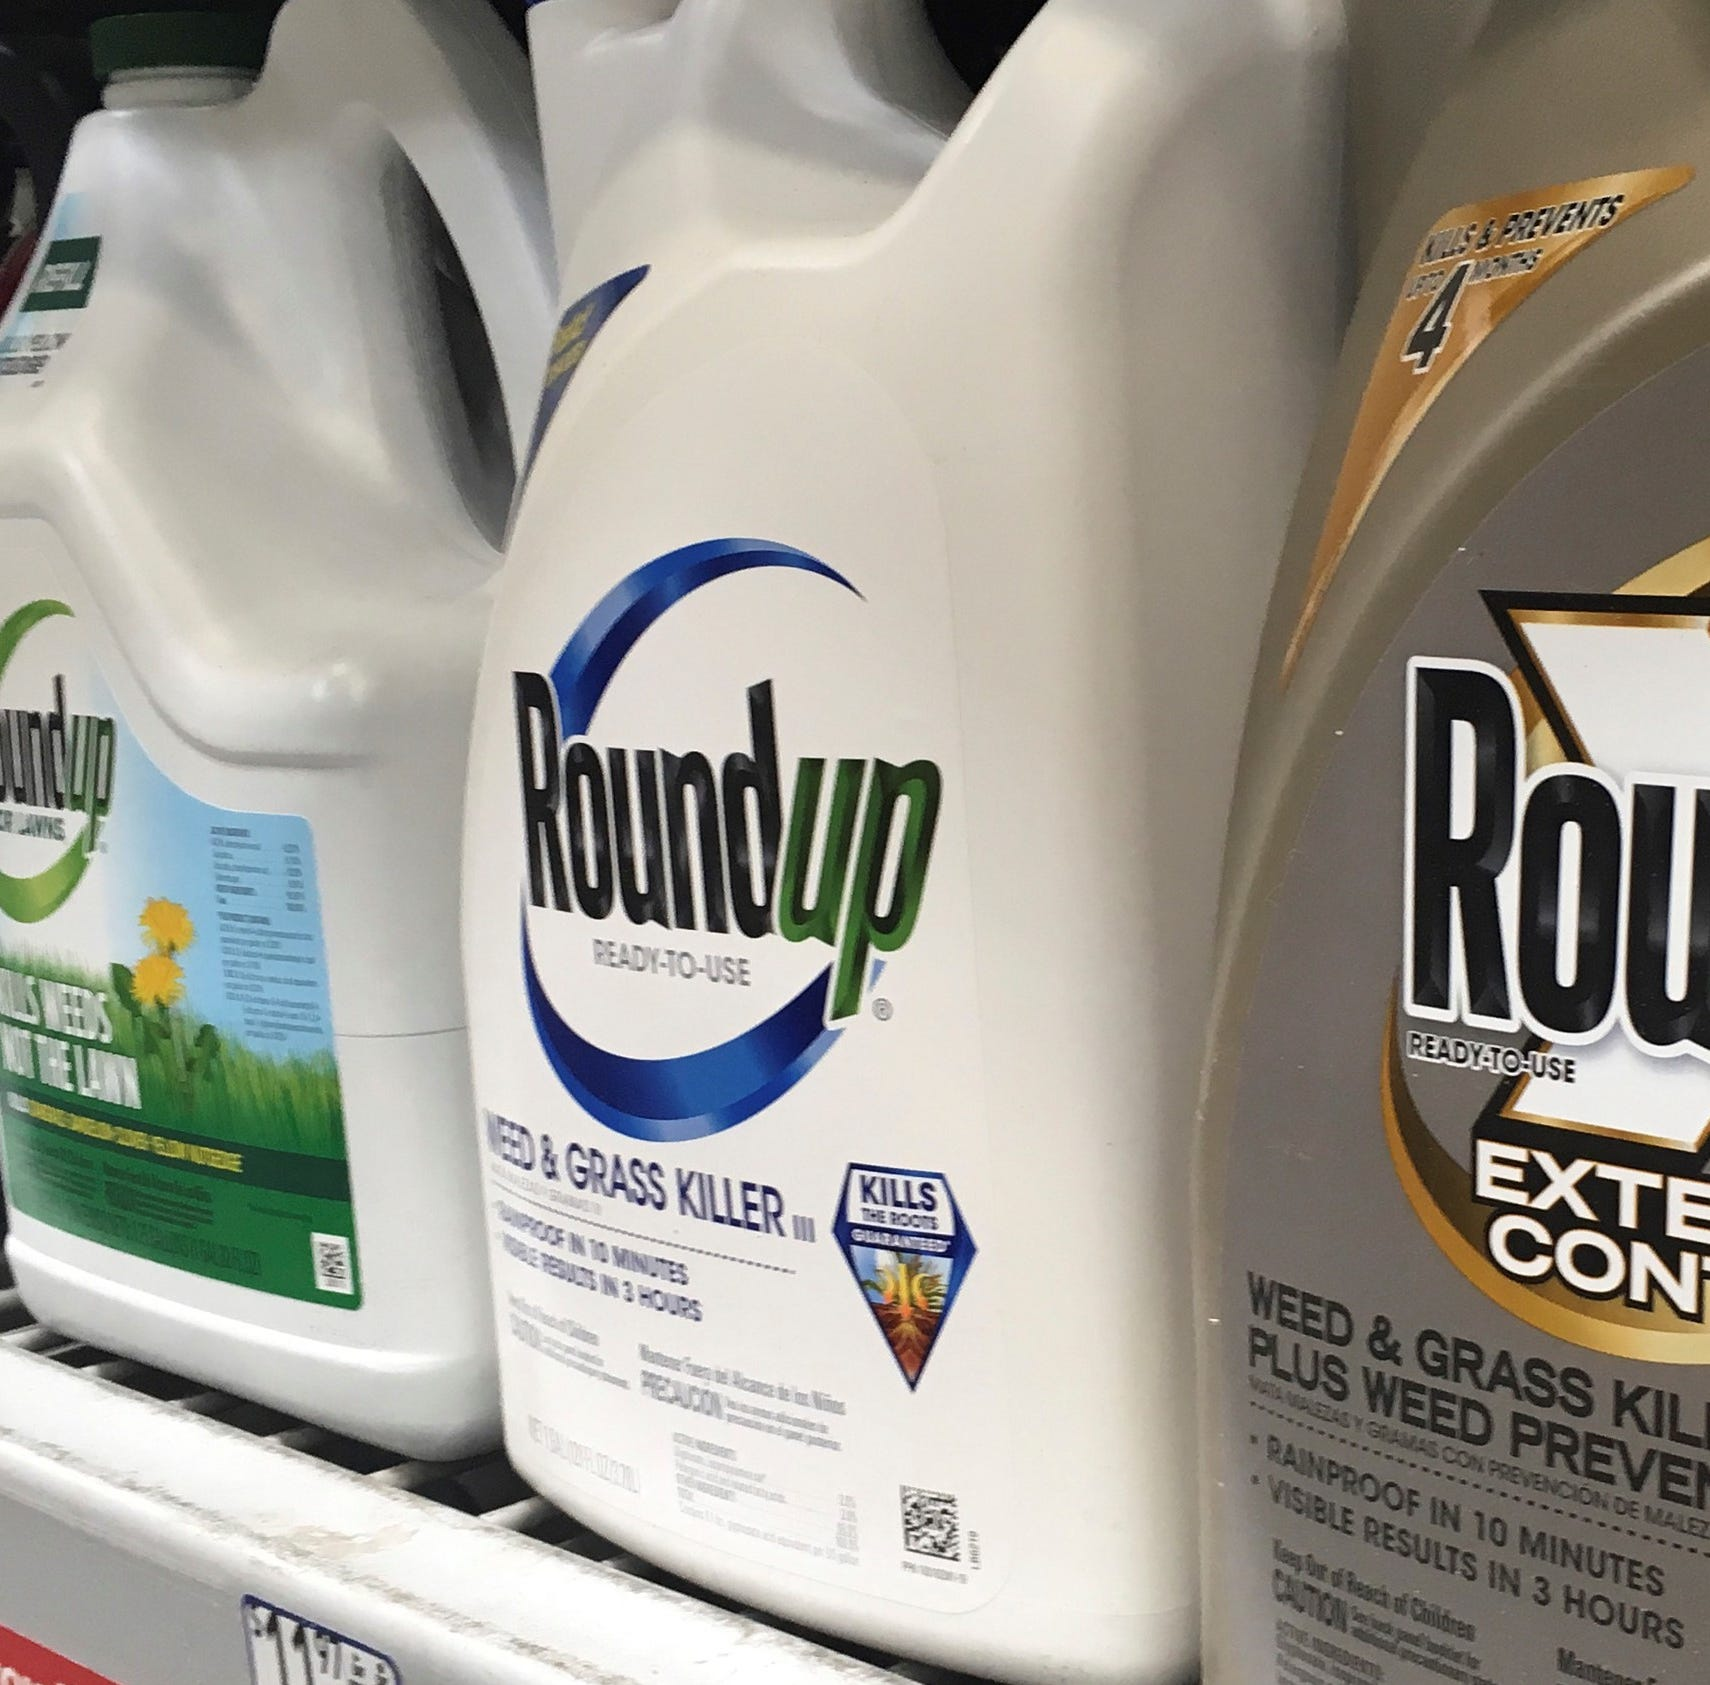 Roundup weed killer is major factor in man's cancer, jury decides